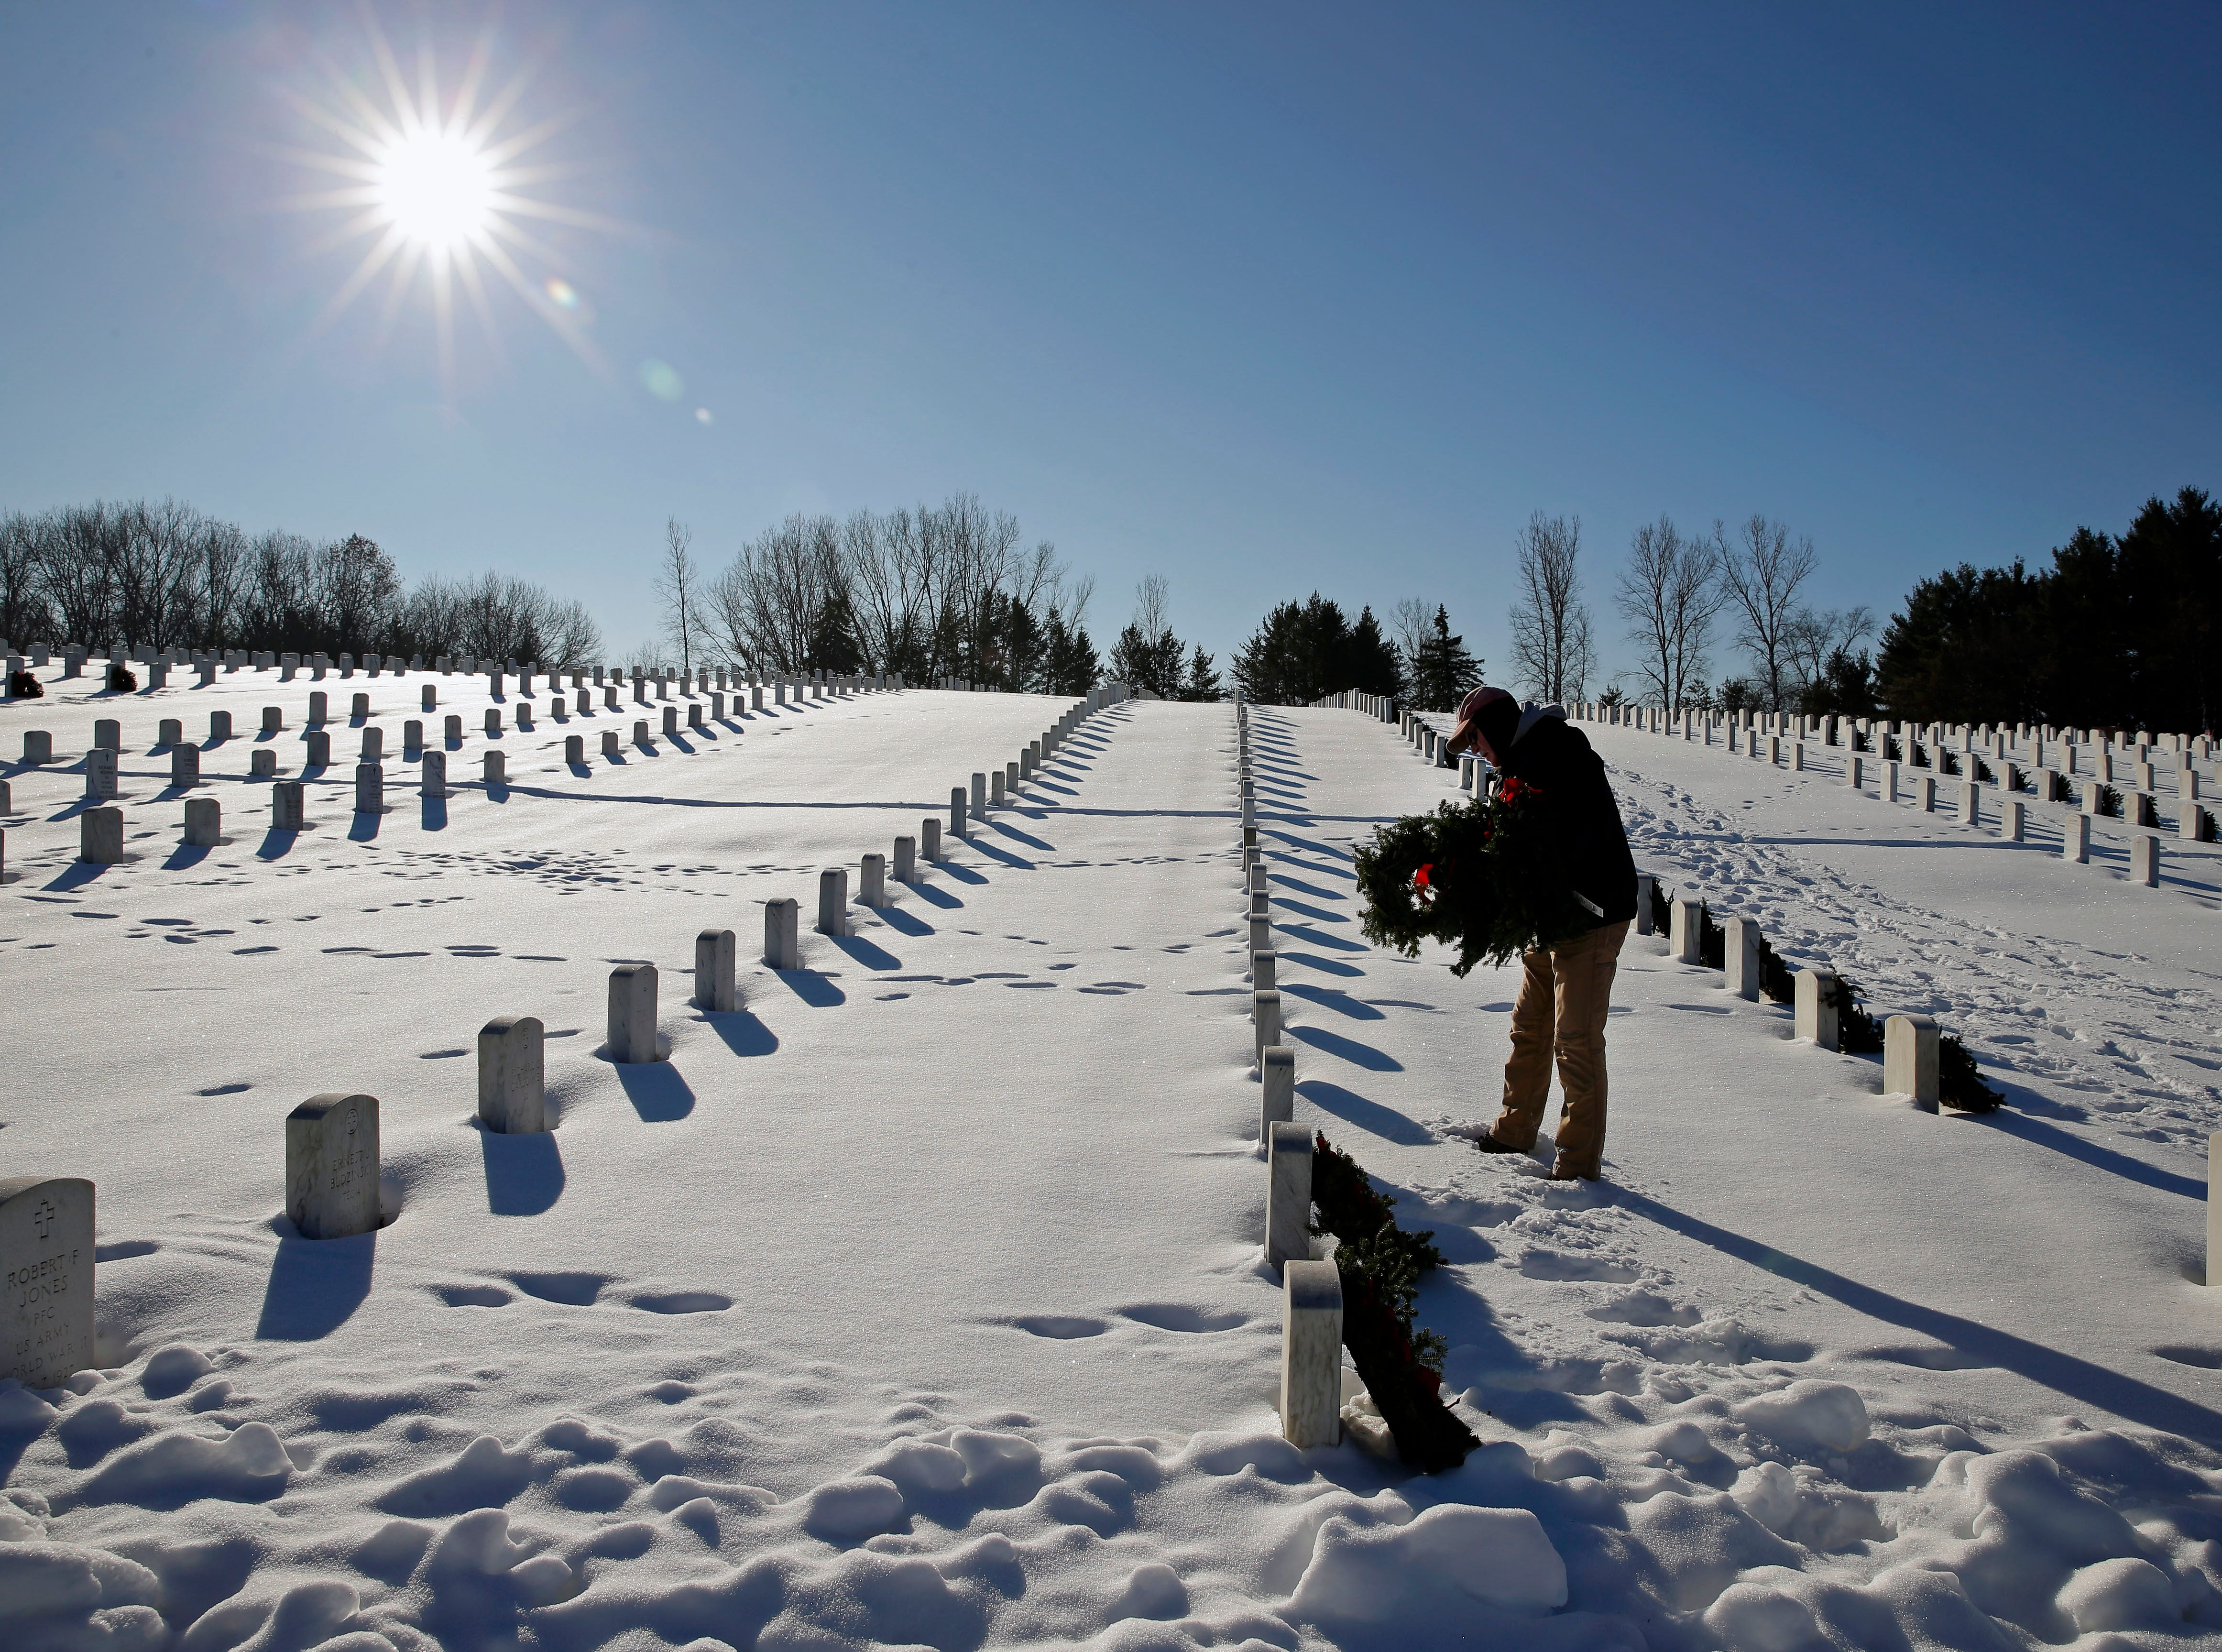 Dave Larson of Waupaca places wreaths as he joins other volunteers taking part in Wreaths Across America Day at the Central Wisconsin Veterans Memorial Cemetery Saturday, December 15, 2018, in King, Wis. Over 7000 graves at King were honored with wreaths. Over 1400 other locations took part in the coordinated ceremony.